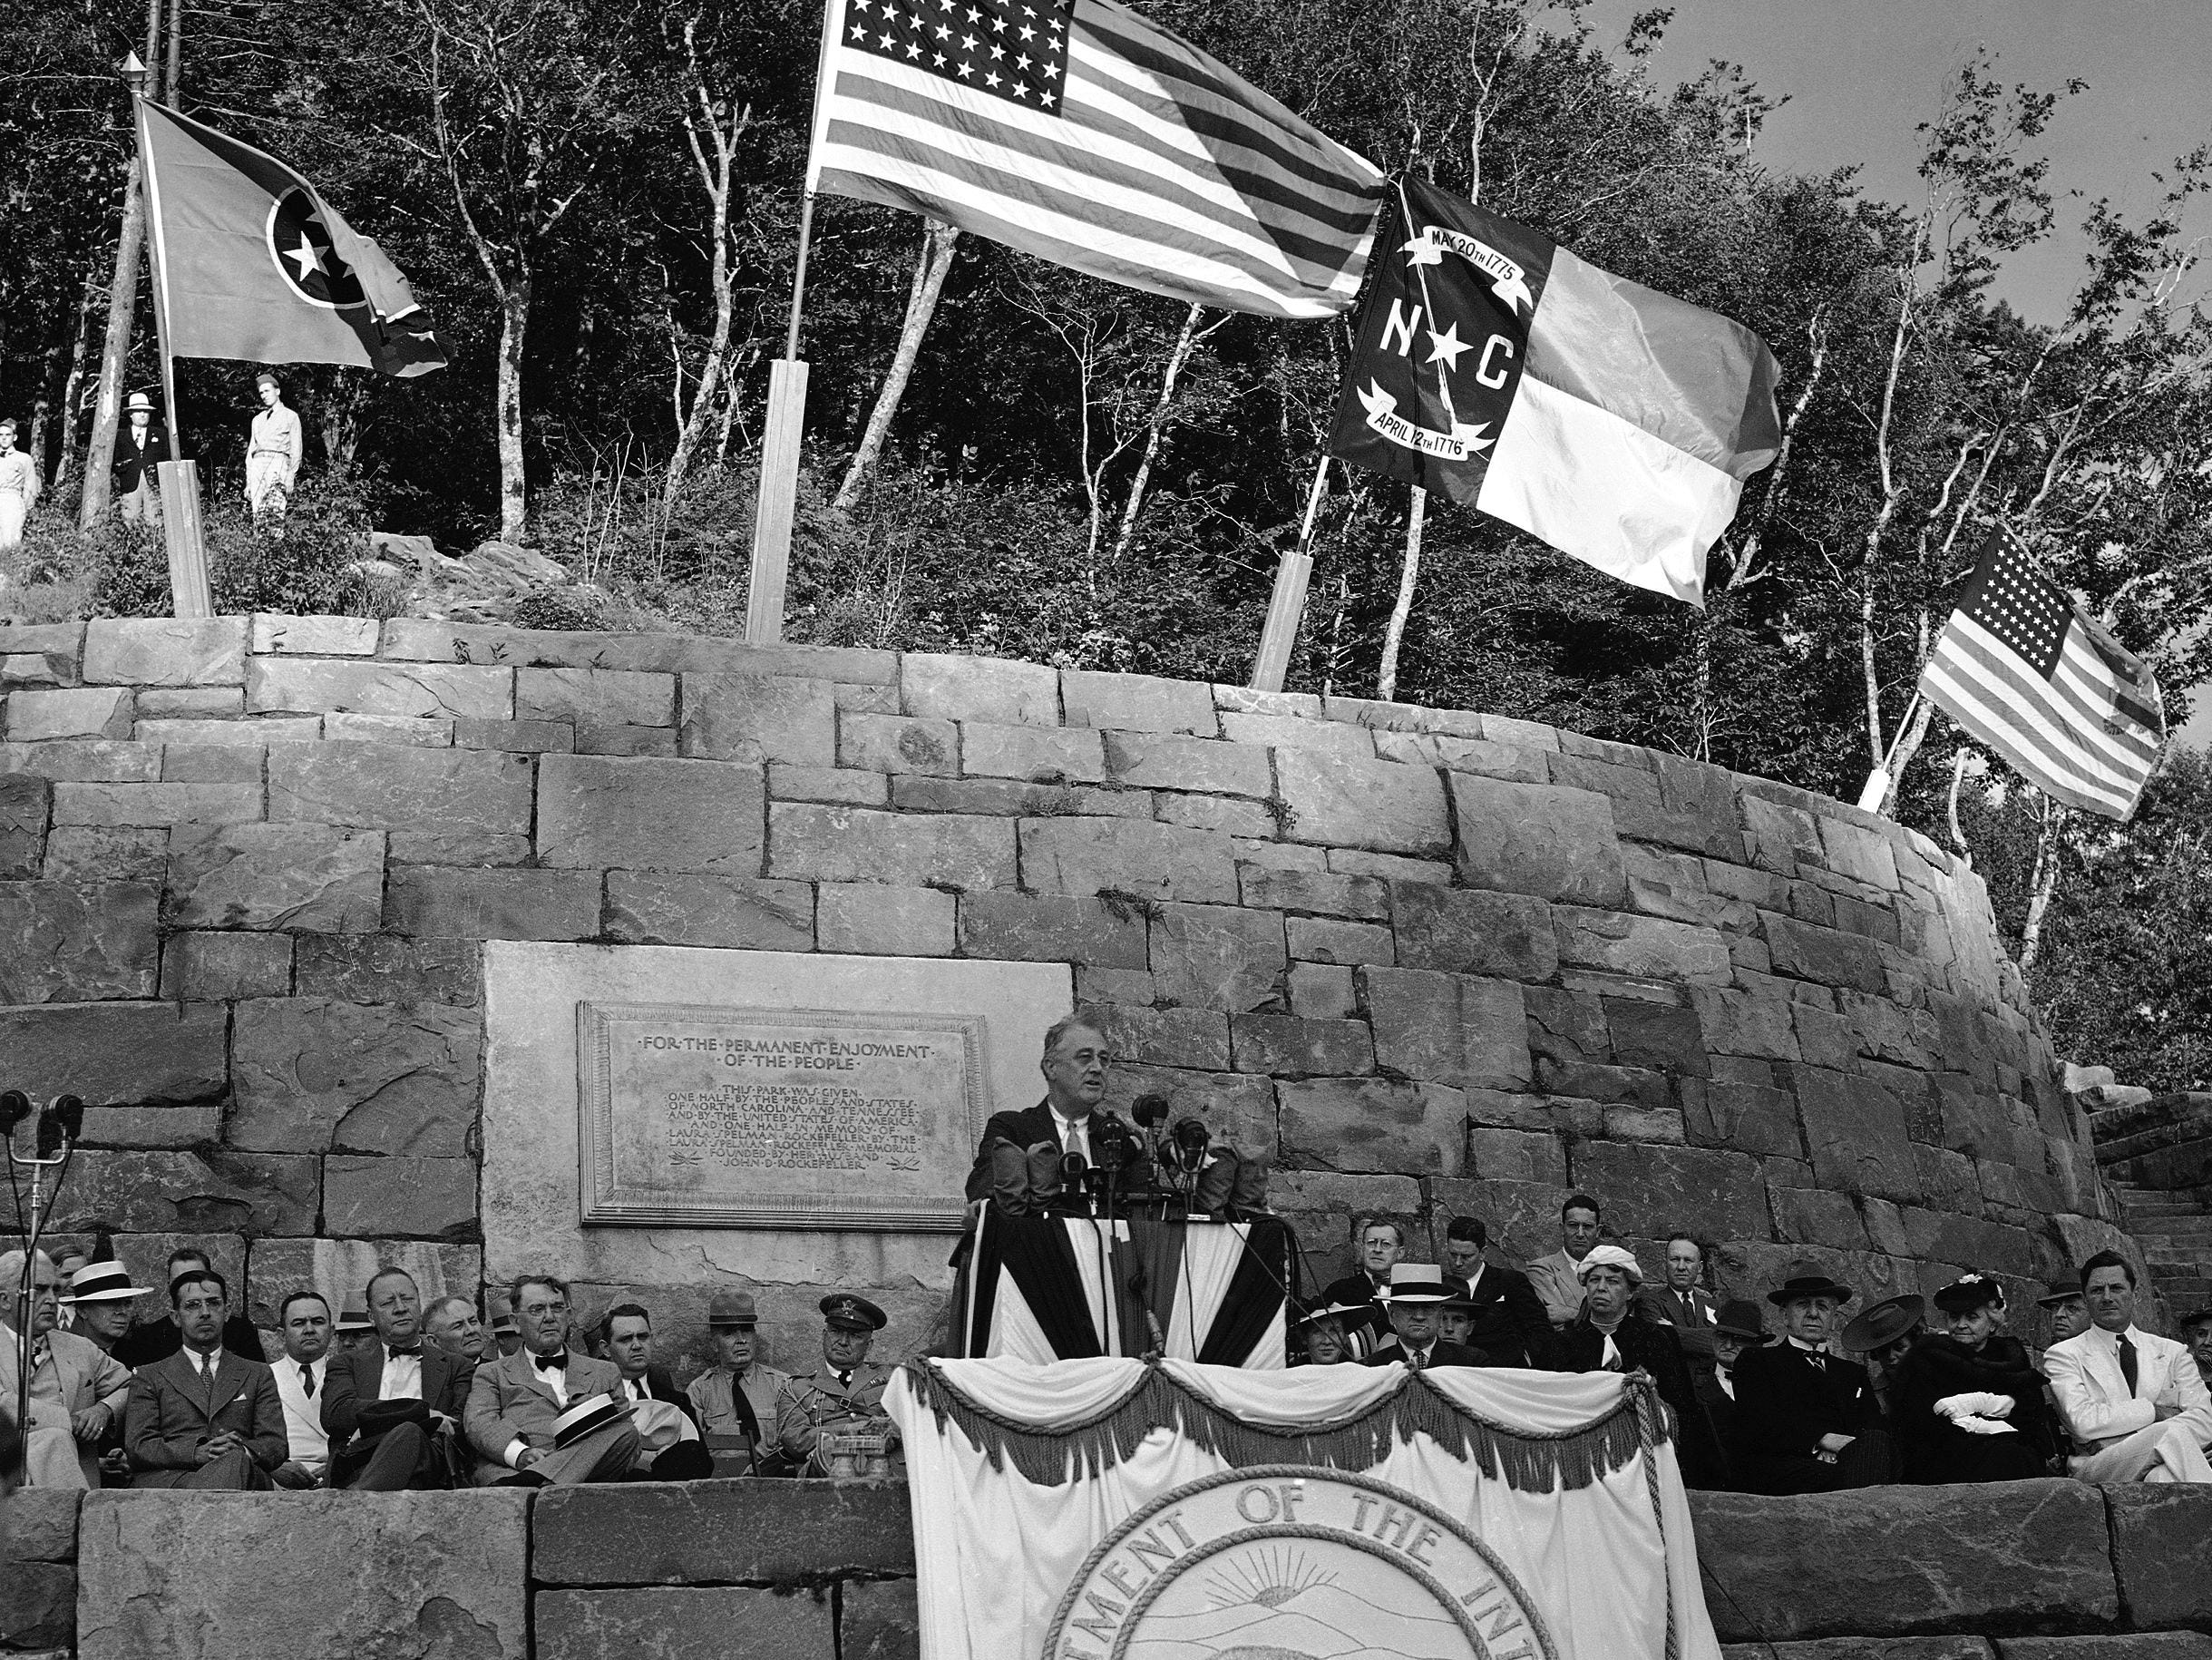 President Franklin D. Roosevelt dedicates the Great Smoky Mountains National Park at Newfound Gap on September 2, 1940. Secretary of the Interior Harold Ickes is seated just to the right of the microphones. Next to him at the right Eleanor Roosevelt. At extreme right Gov. Clyde Hoey of North Carolina. Also pictured are U.S. Sen. Robert Reynolds of North Carolina and U.S. Sen. Kenneth McKellar of Tennessee.